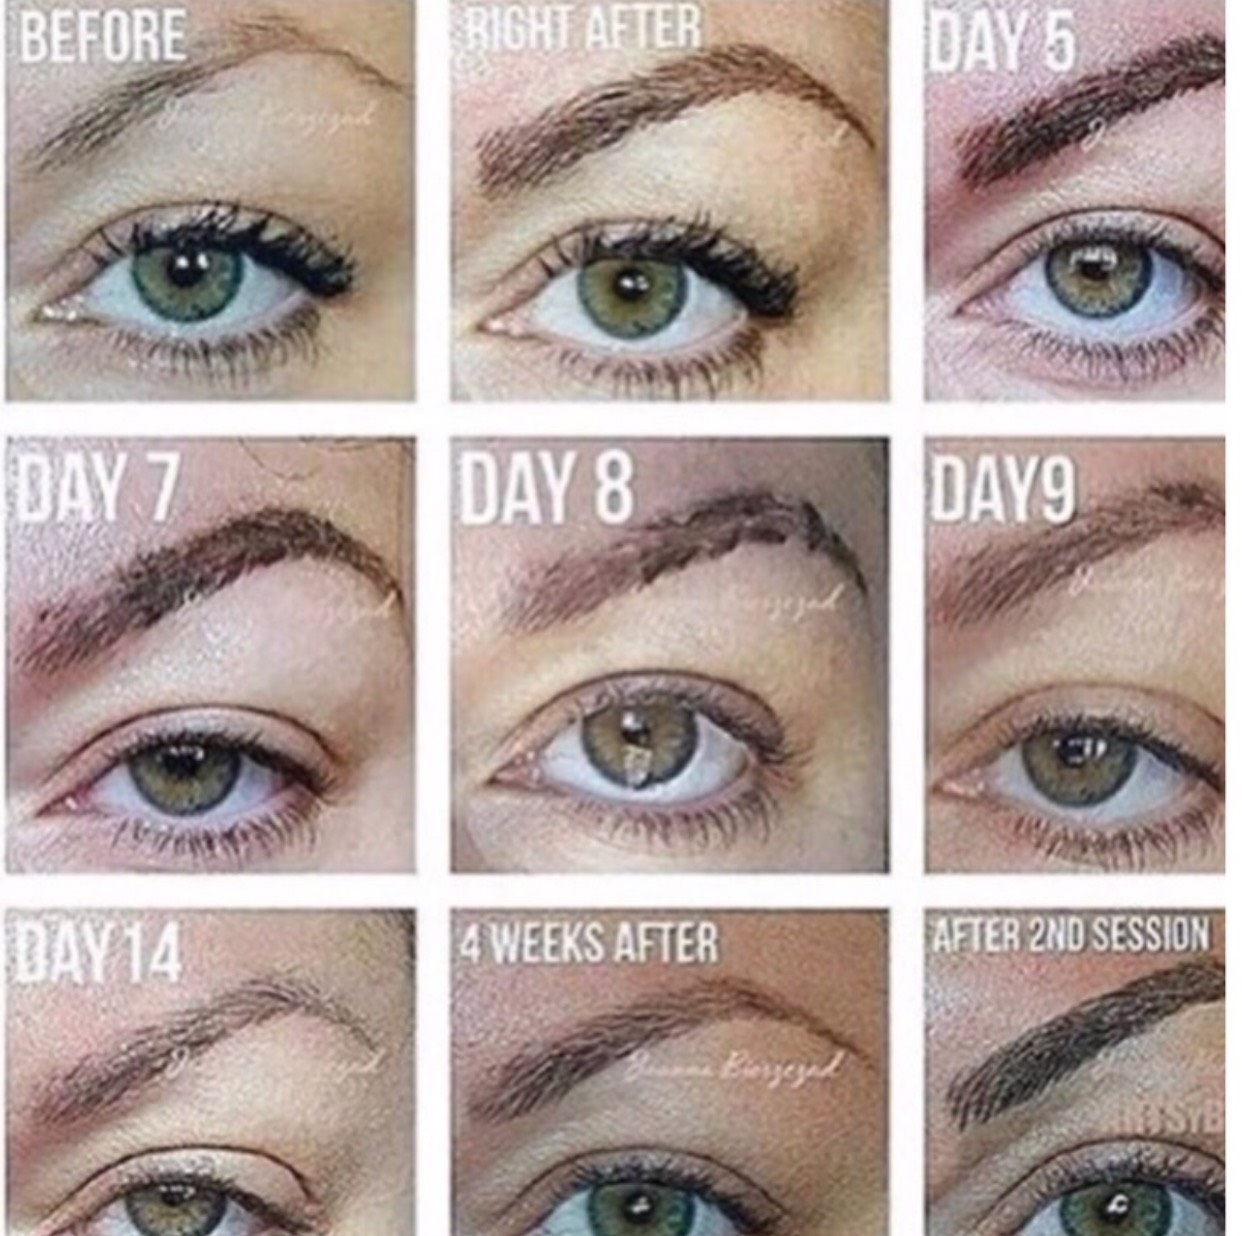 Eyebrow Aftercare & Tattoo Aftercare | Make Up Before You Wake Up